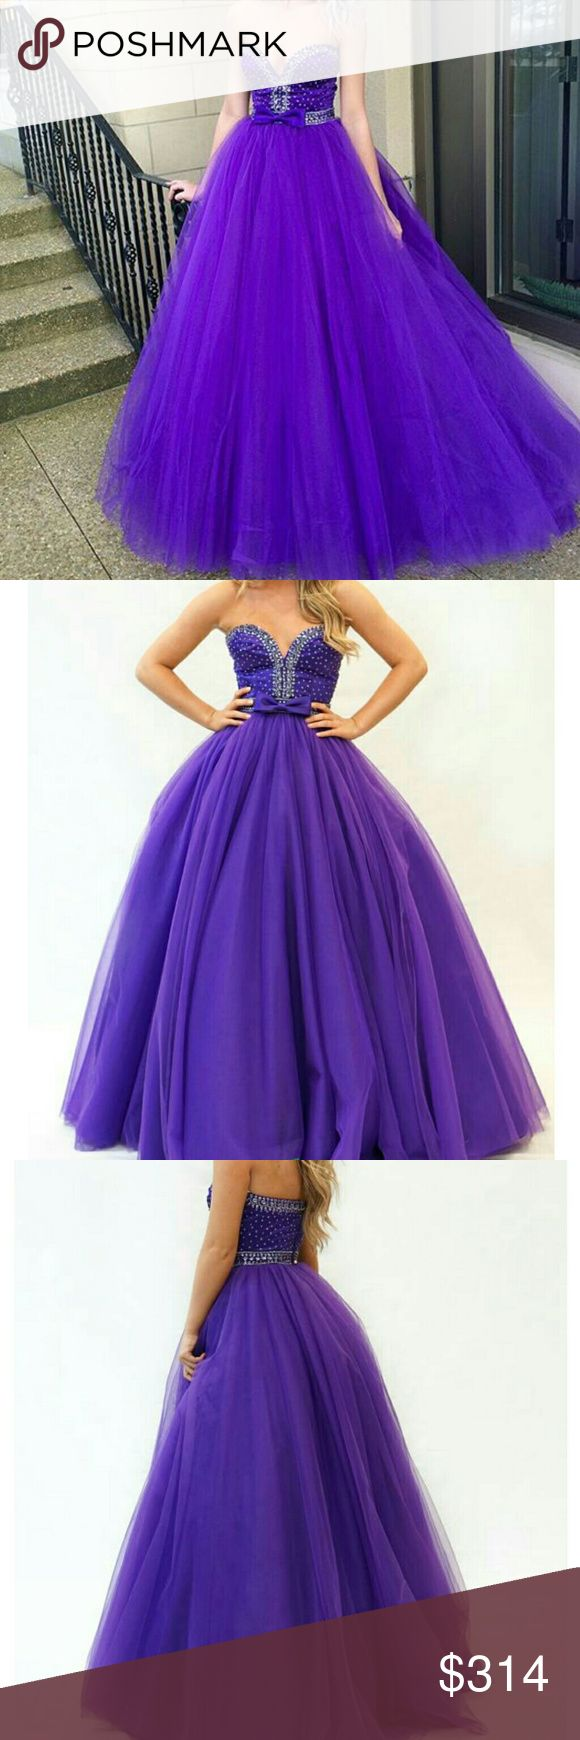 Sherri Hill Prom Dress Prom Gown Style 21367 AUTHENTIC SHERRI HILL PROM GOWN: Avoid online shopping nightmares by staying away from cheap prom dress knockoffs! This item is from a certified Sherri-approved retailer so you can rest assured knowing that you will be wearing a genuine designer prom gown at Prom2k17.    BRING ON THE BLING:  This strapless gown features a sweetheart cut. Beaded bodice with bow detail along the waistline. Full ball gown skirt with a zip up closure. Sherri Hill…